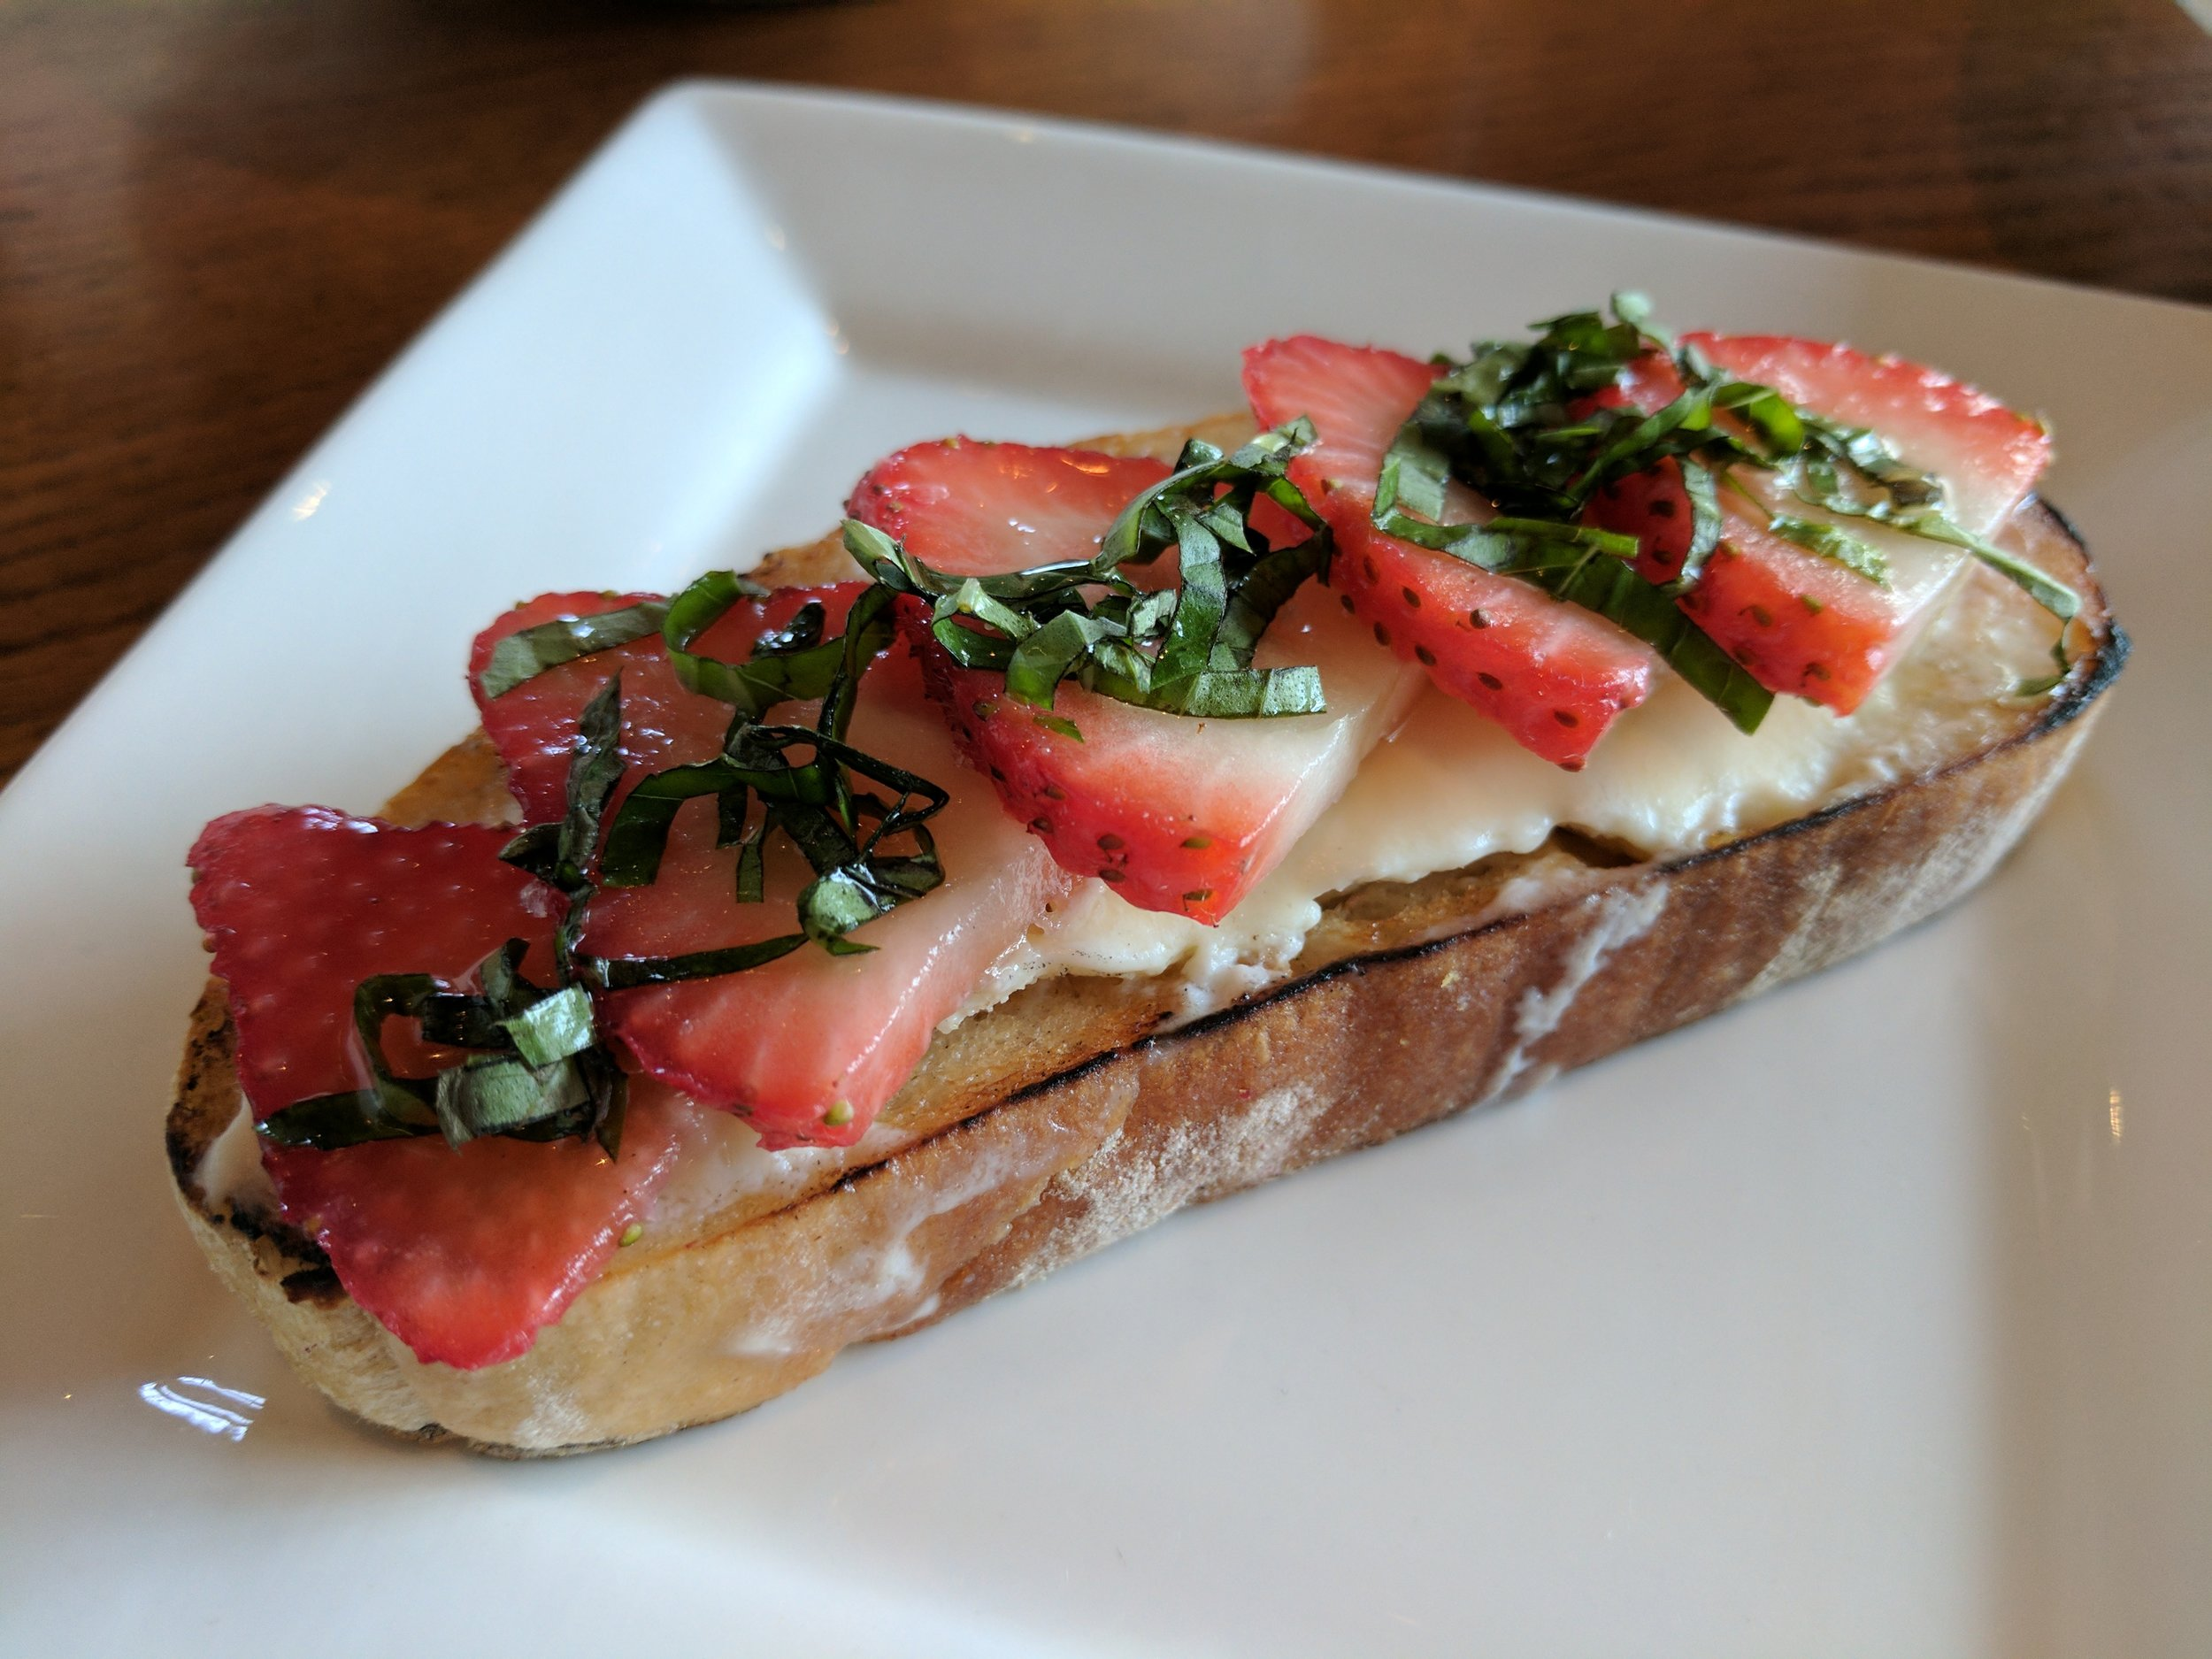 Fresh strawberries sliced over mascarpone cheese, topped with fresh basil and a drizzle of honey.